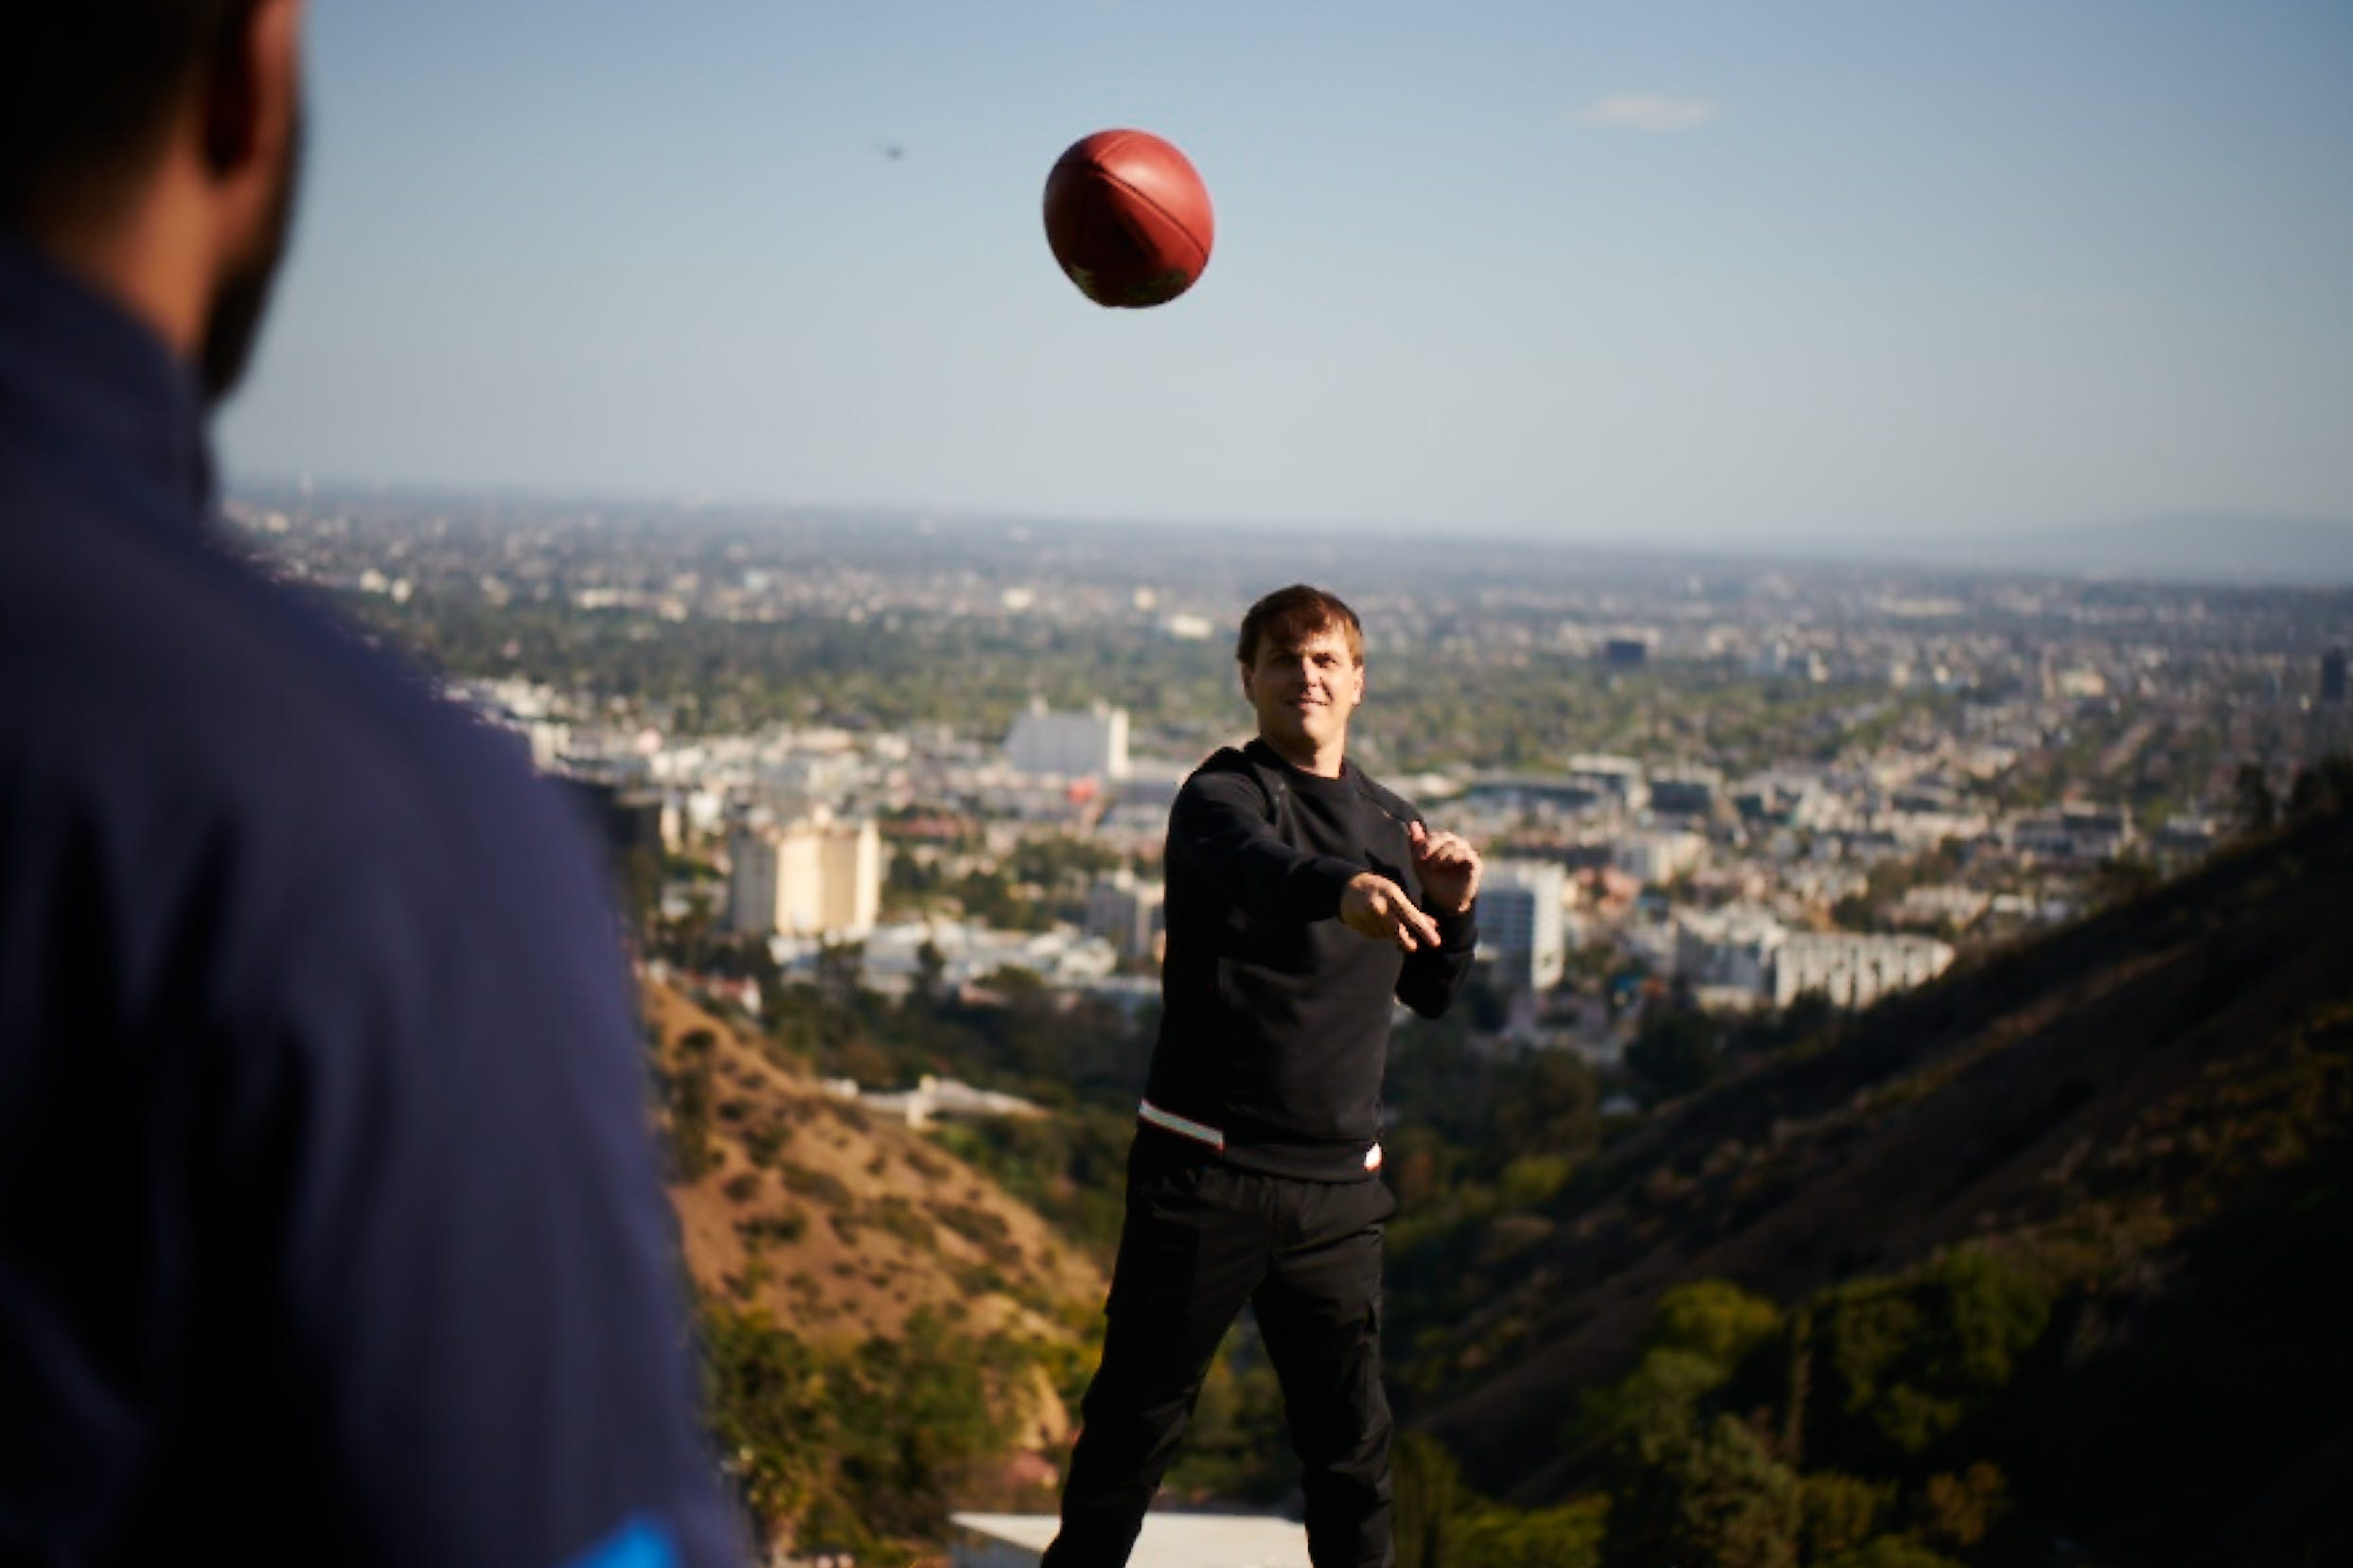 Ad Staff throwing a football